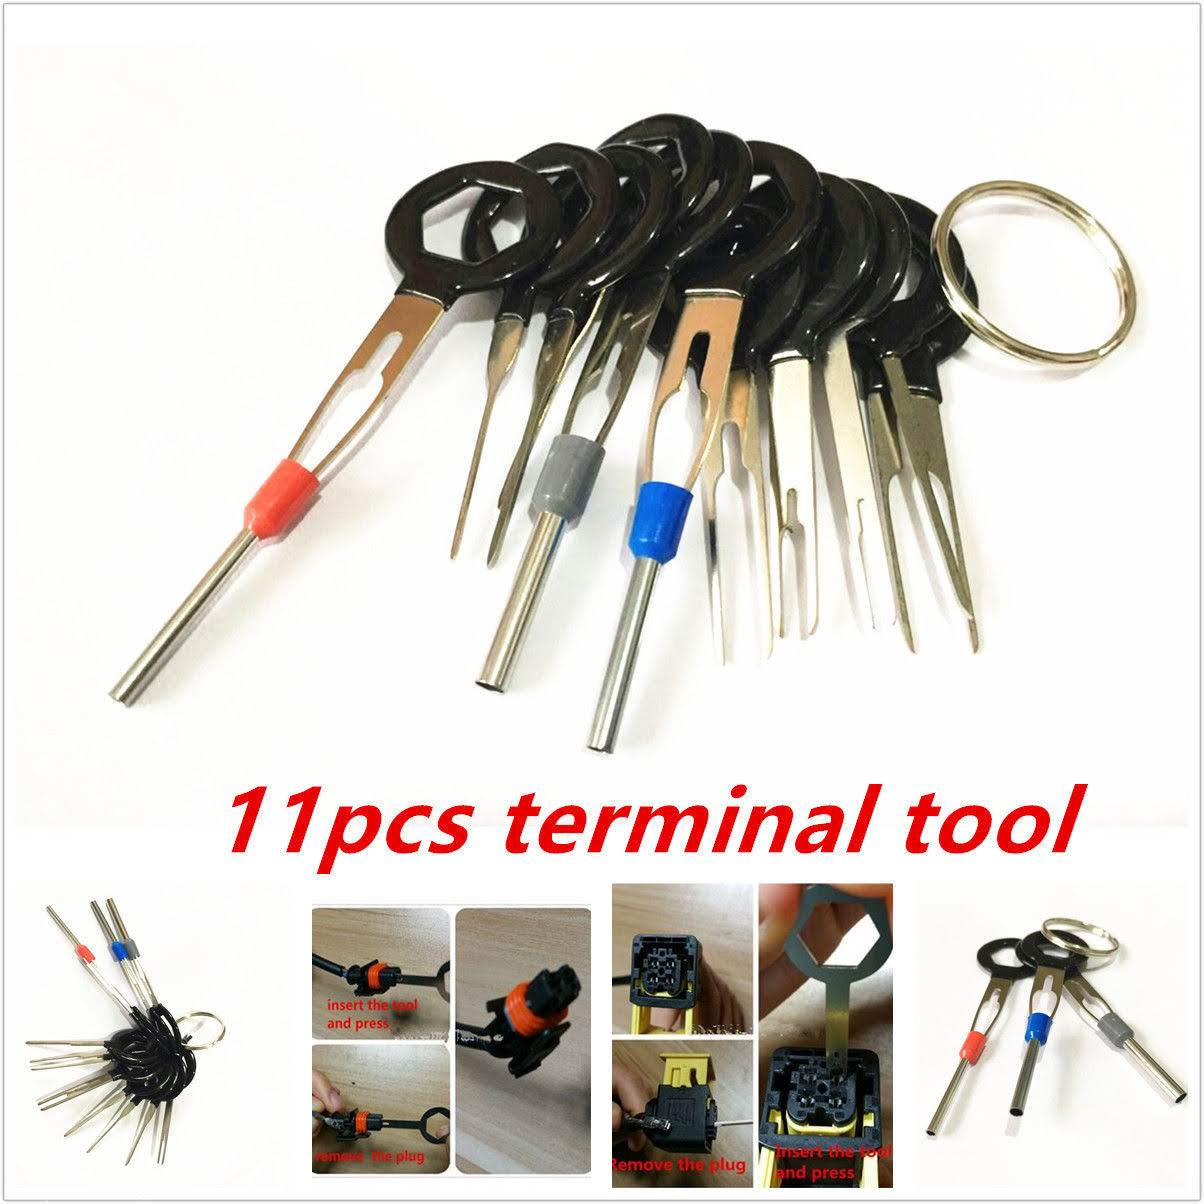 Wiring Harness Pin Removal Tool Electrical Diagrams Sst Wire Terminal Extraction Remove 11pcs Set 16 Diagram